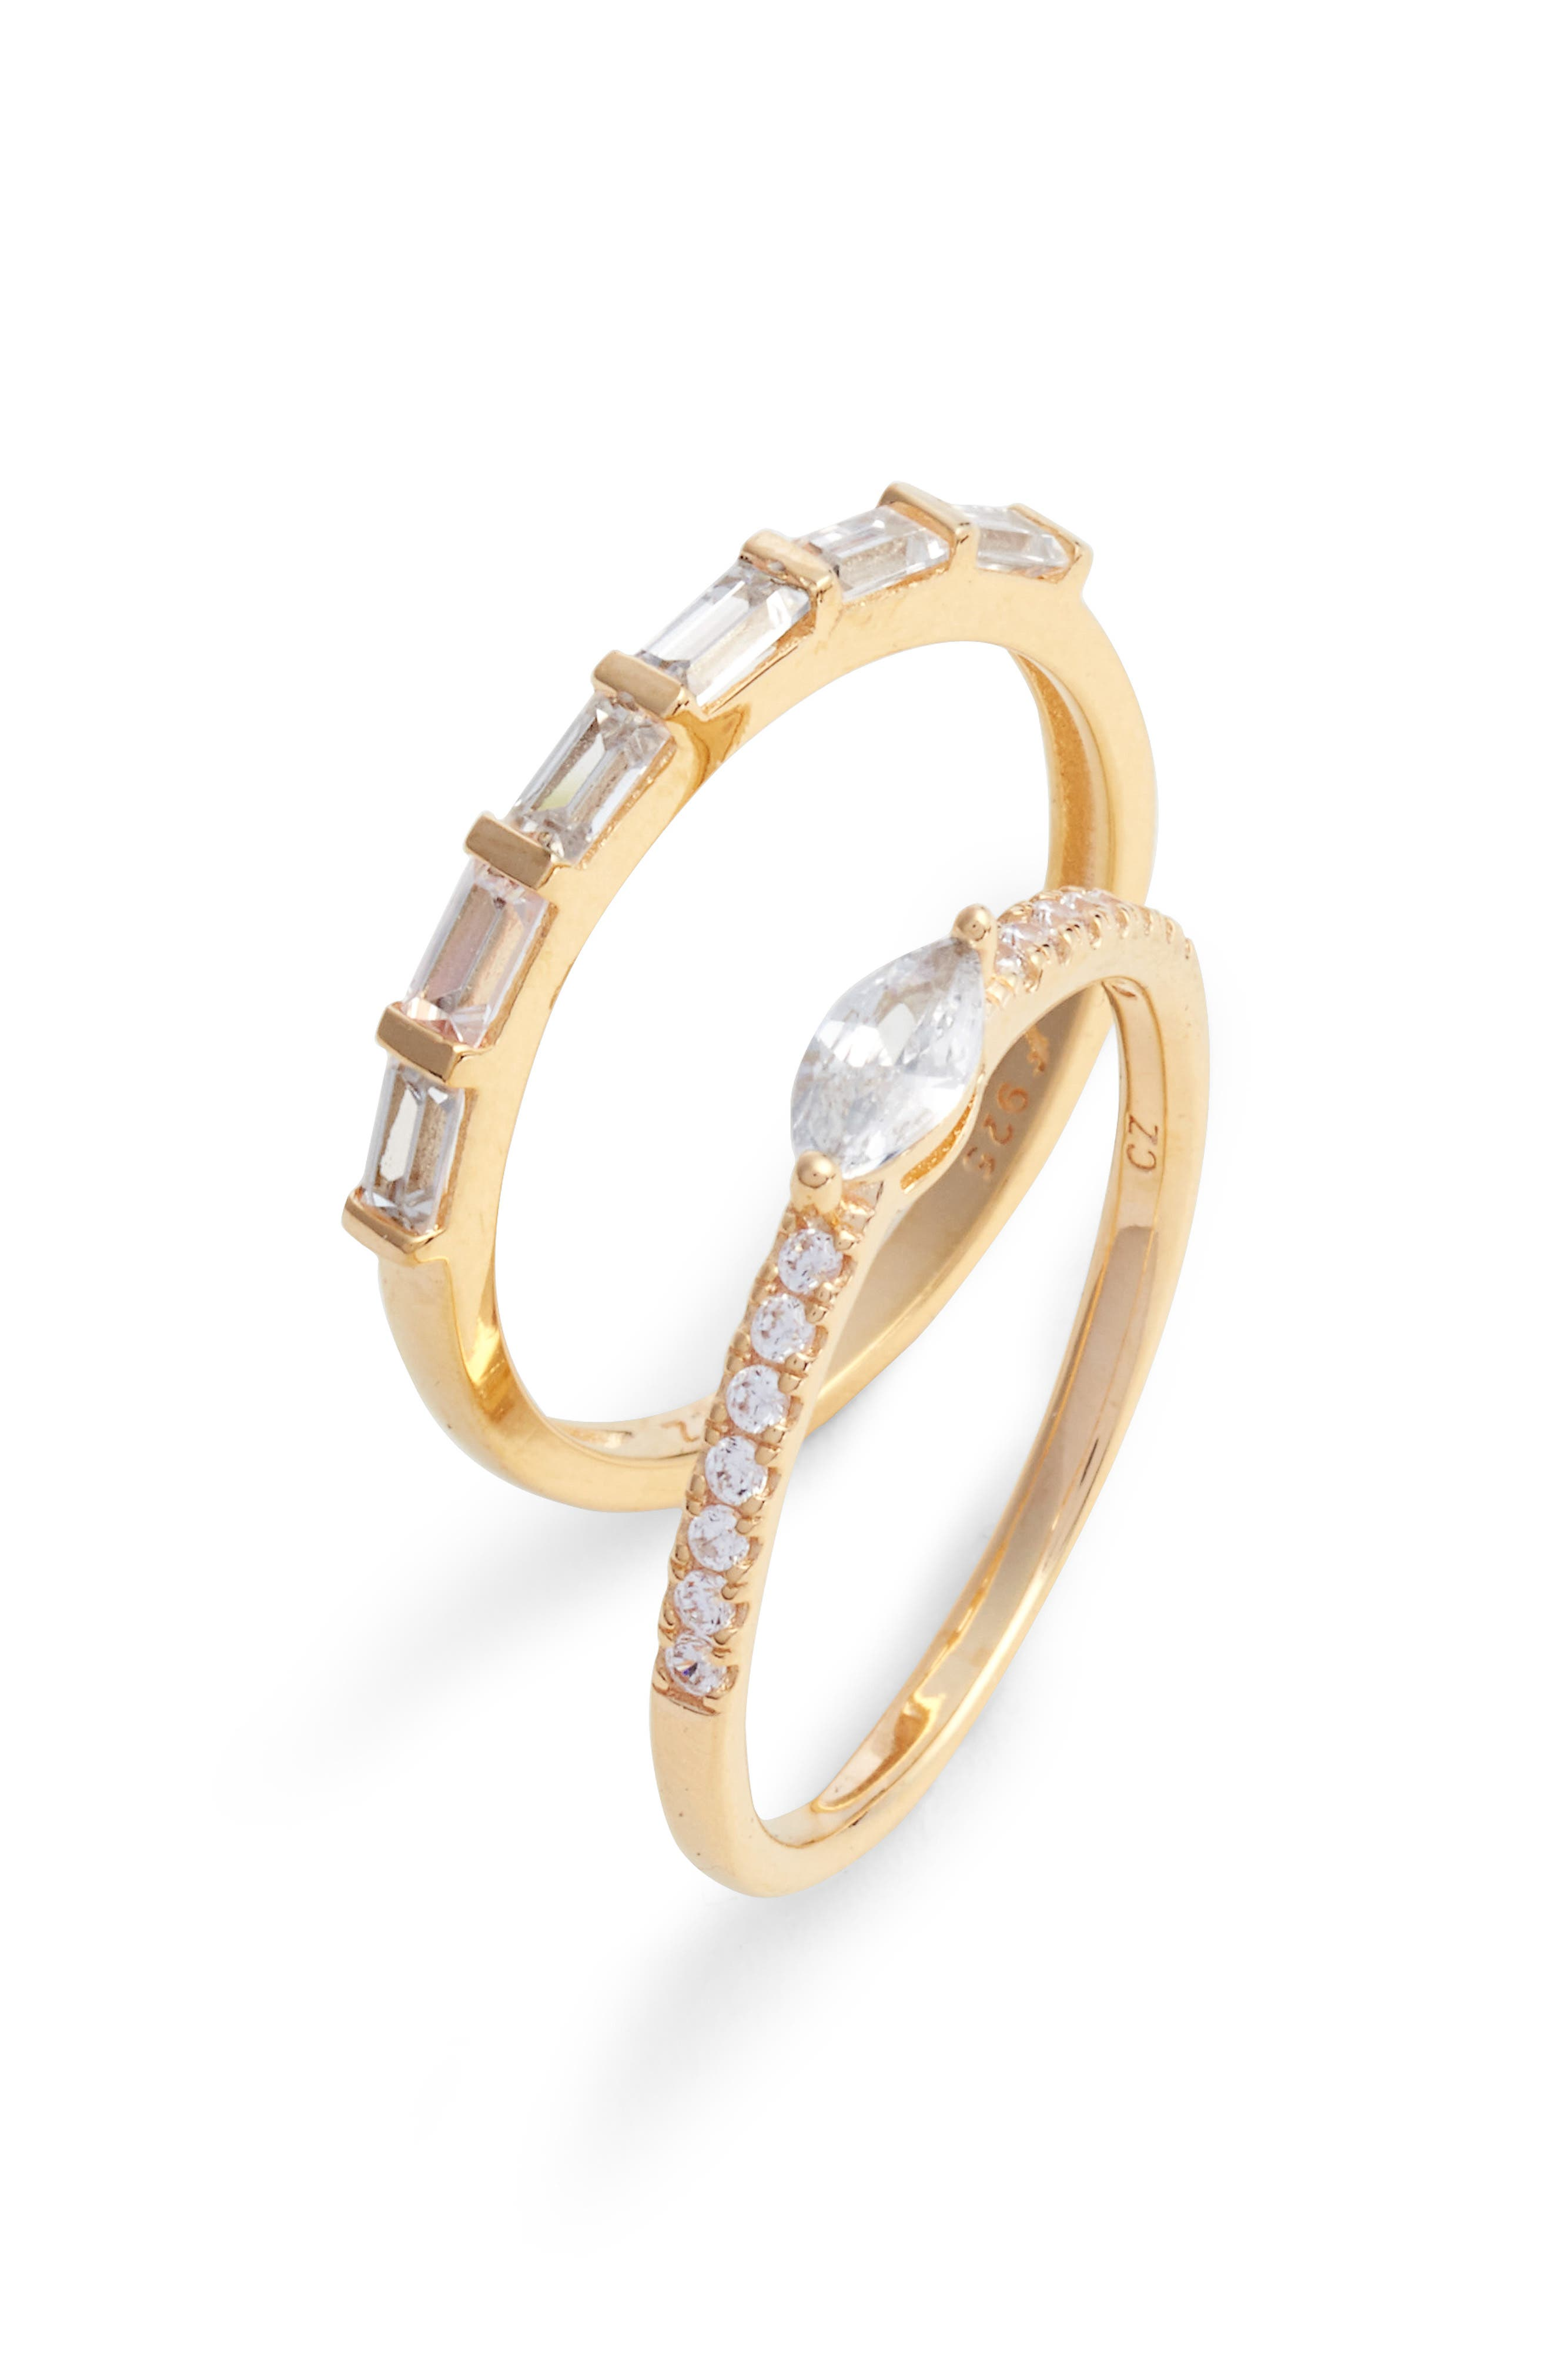 Set of 2 Cubic Zirconia Stacking Rings,                             Main thumbnail 1, color,                             Gold